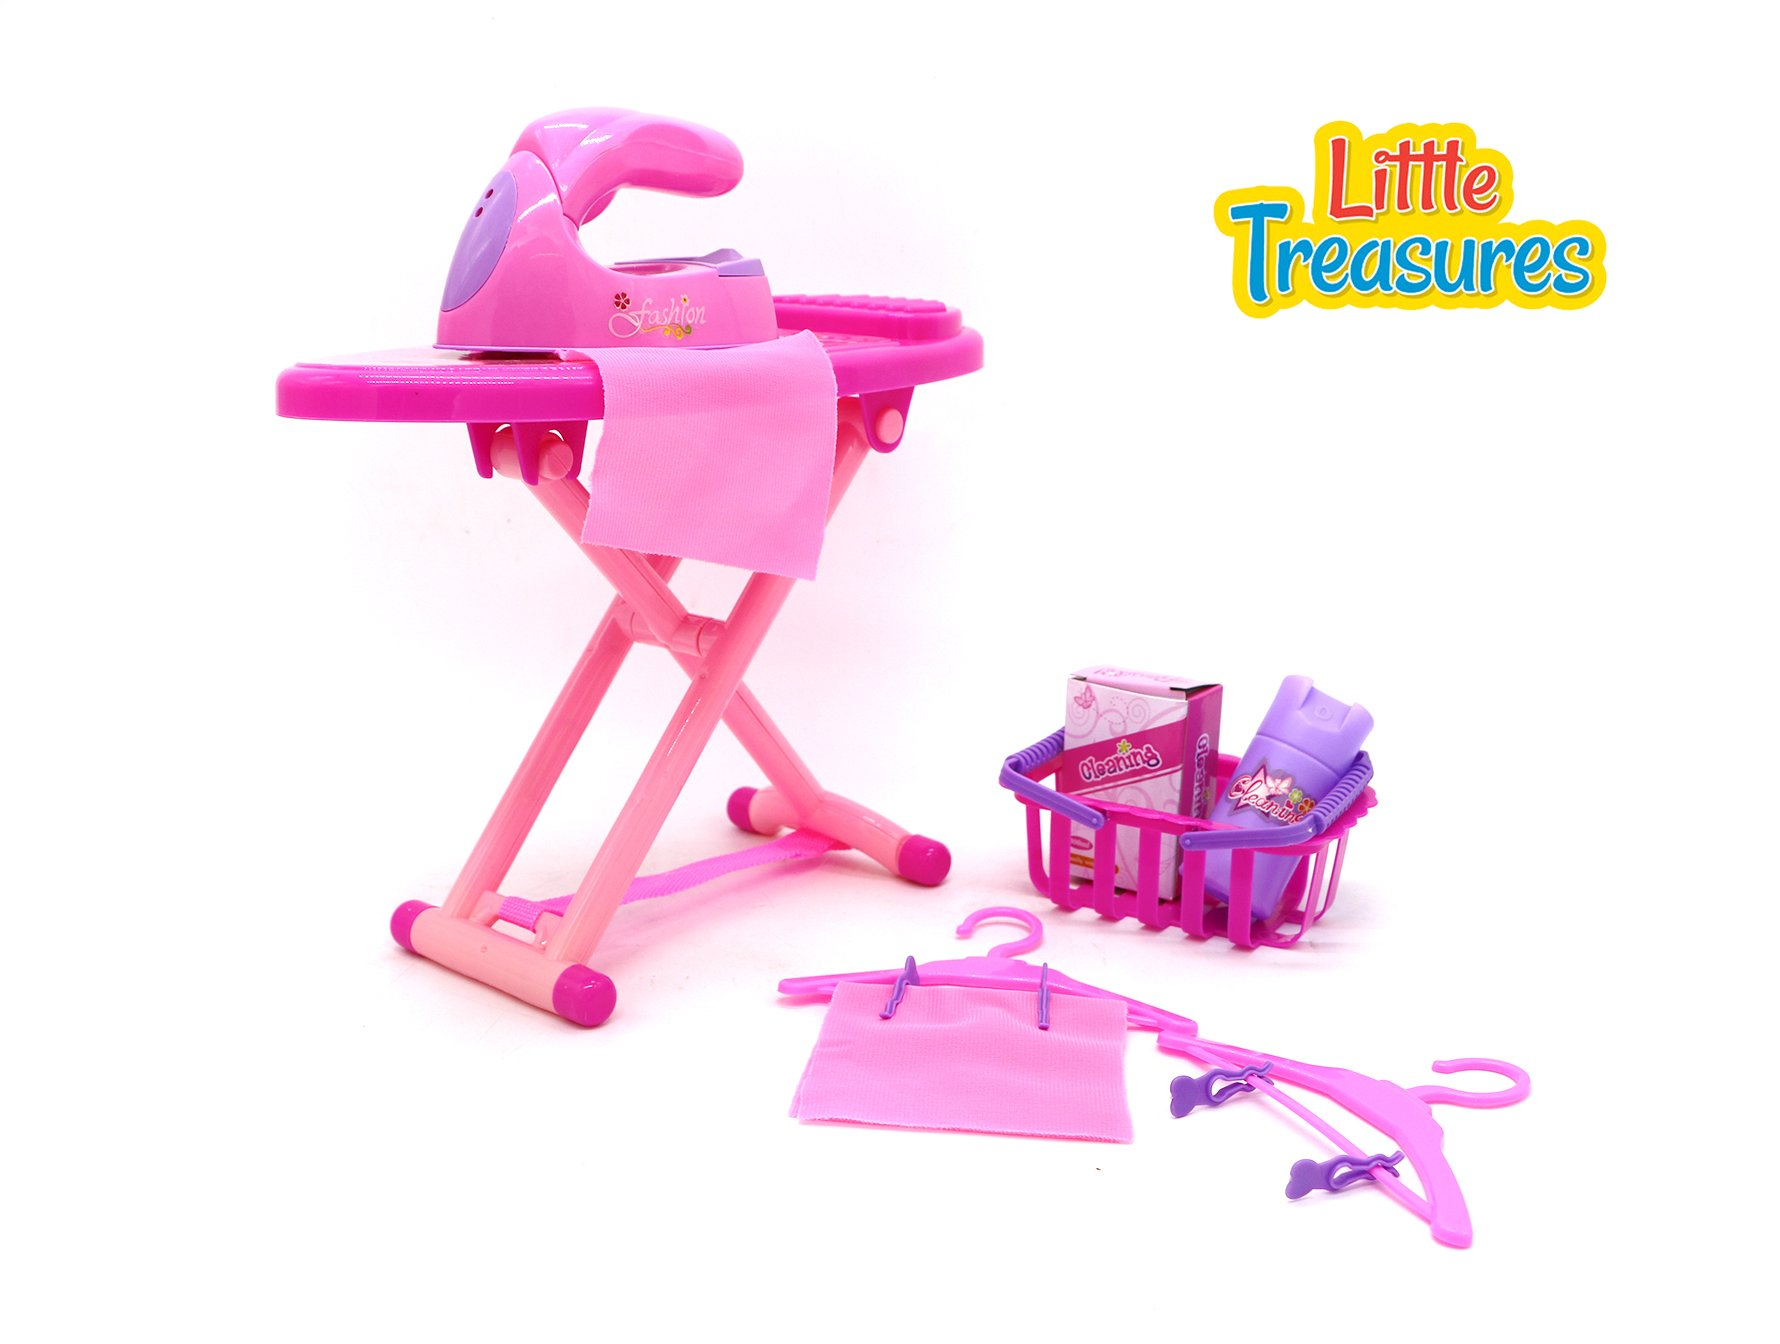 Little Treasures Laundry Playset Toy Family Mini Set Featuring A Toy Iron and Ironing Board, Toy Basket, Toy Hangers and Toy Cleaning Materials